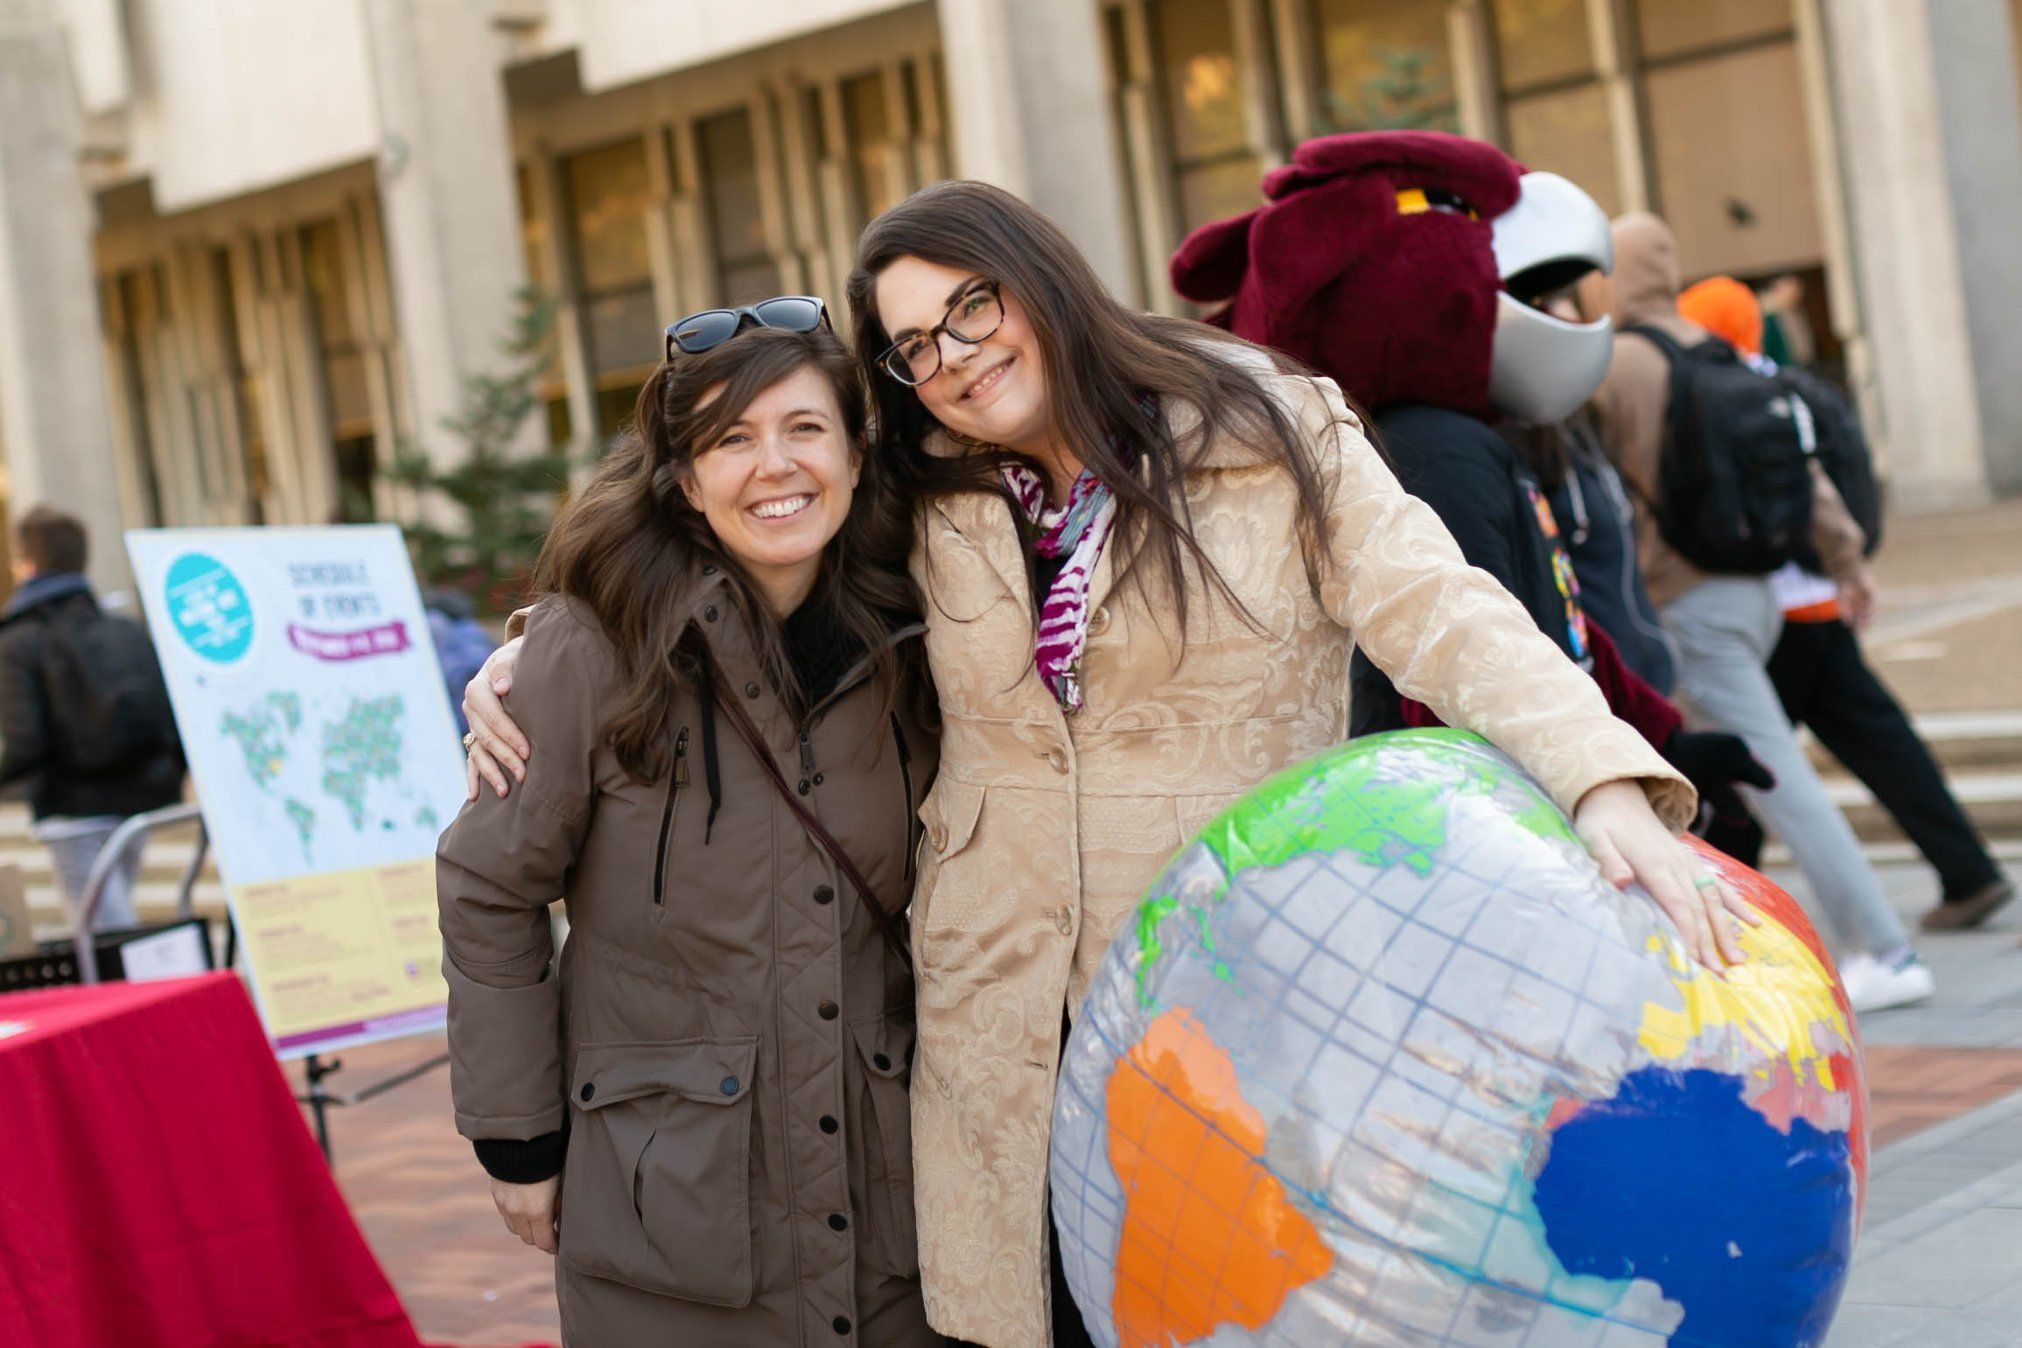 Two smiling women holding a blow-up globe.